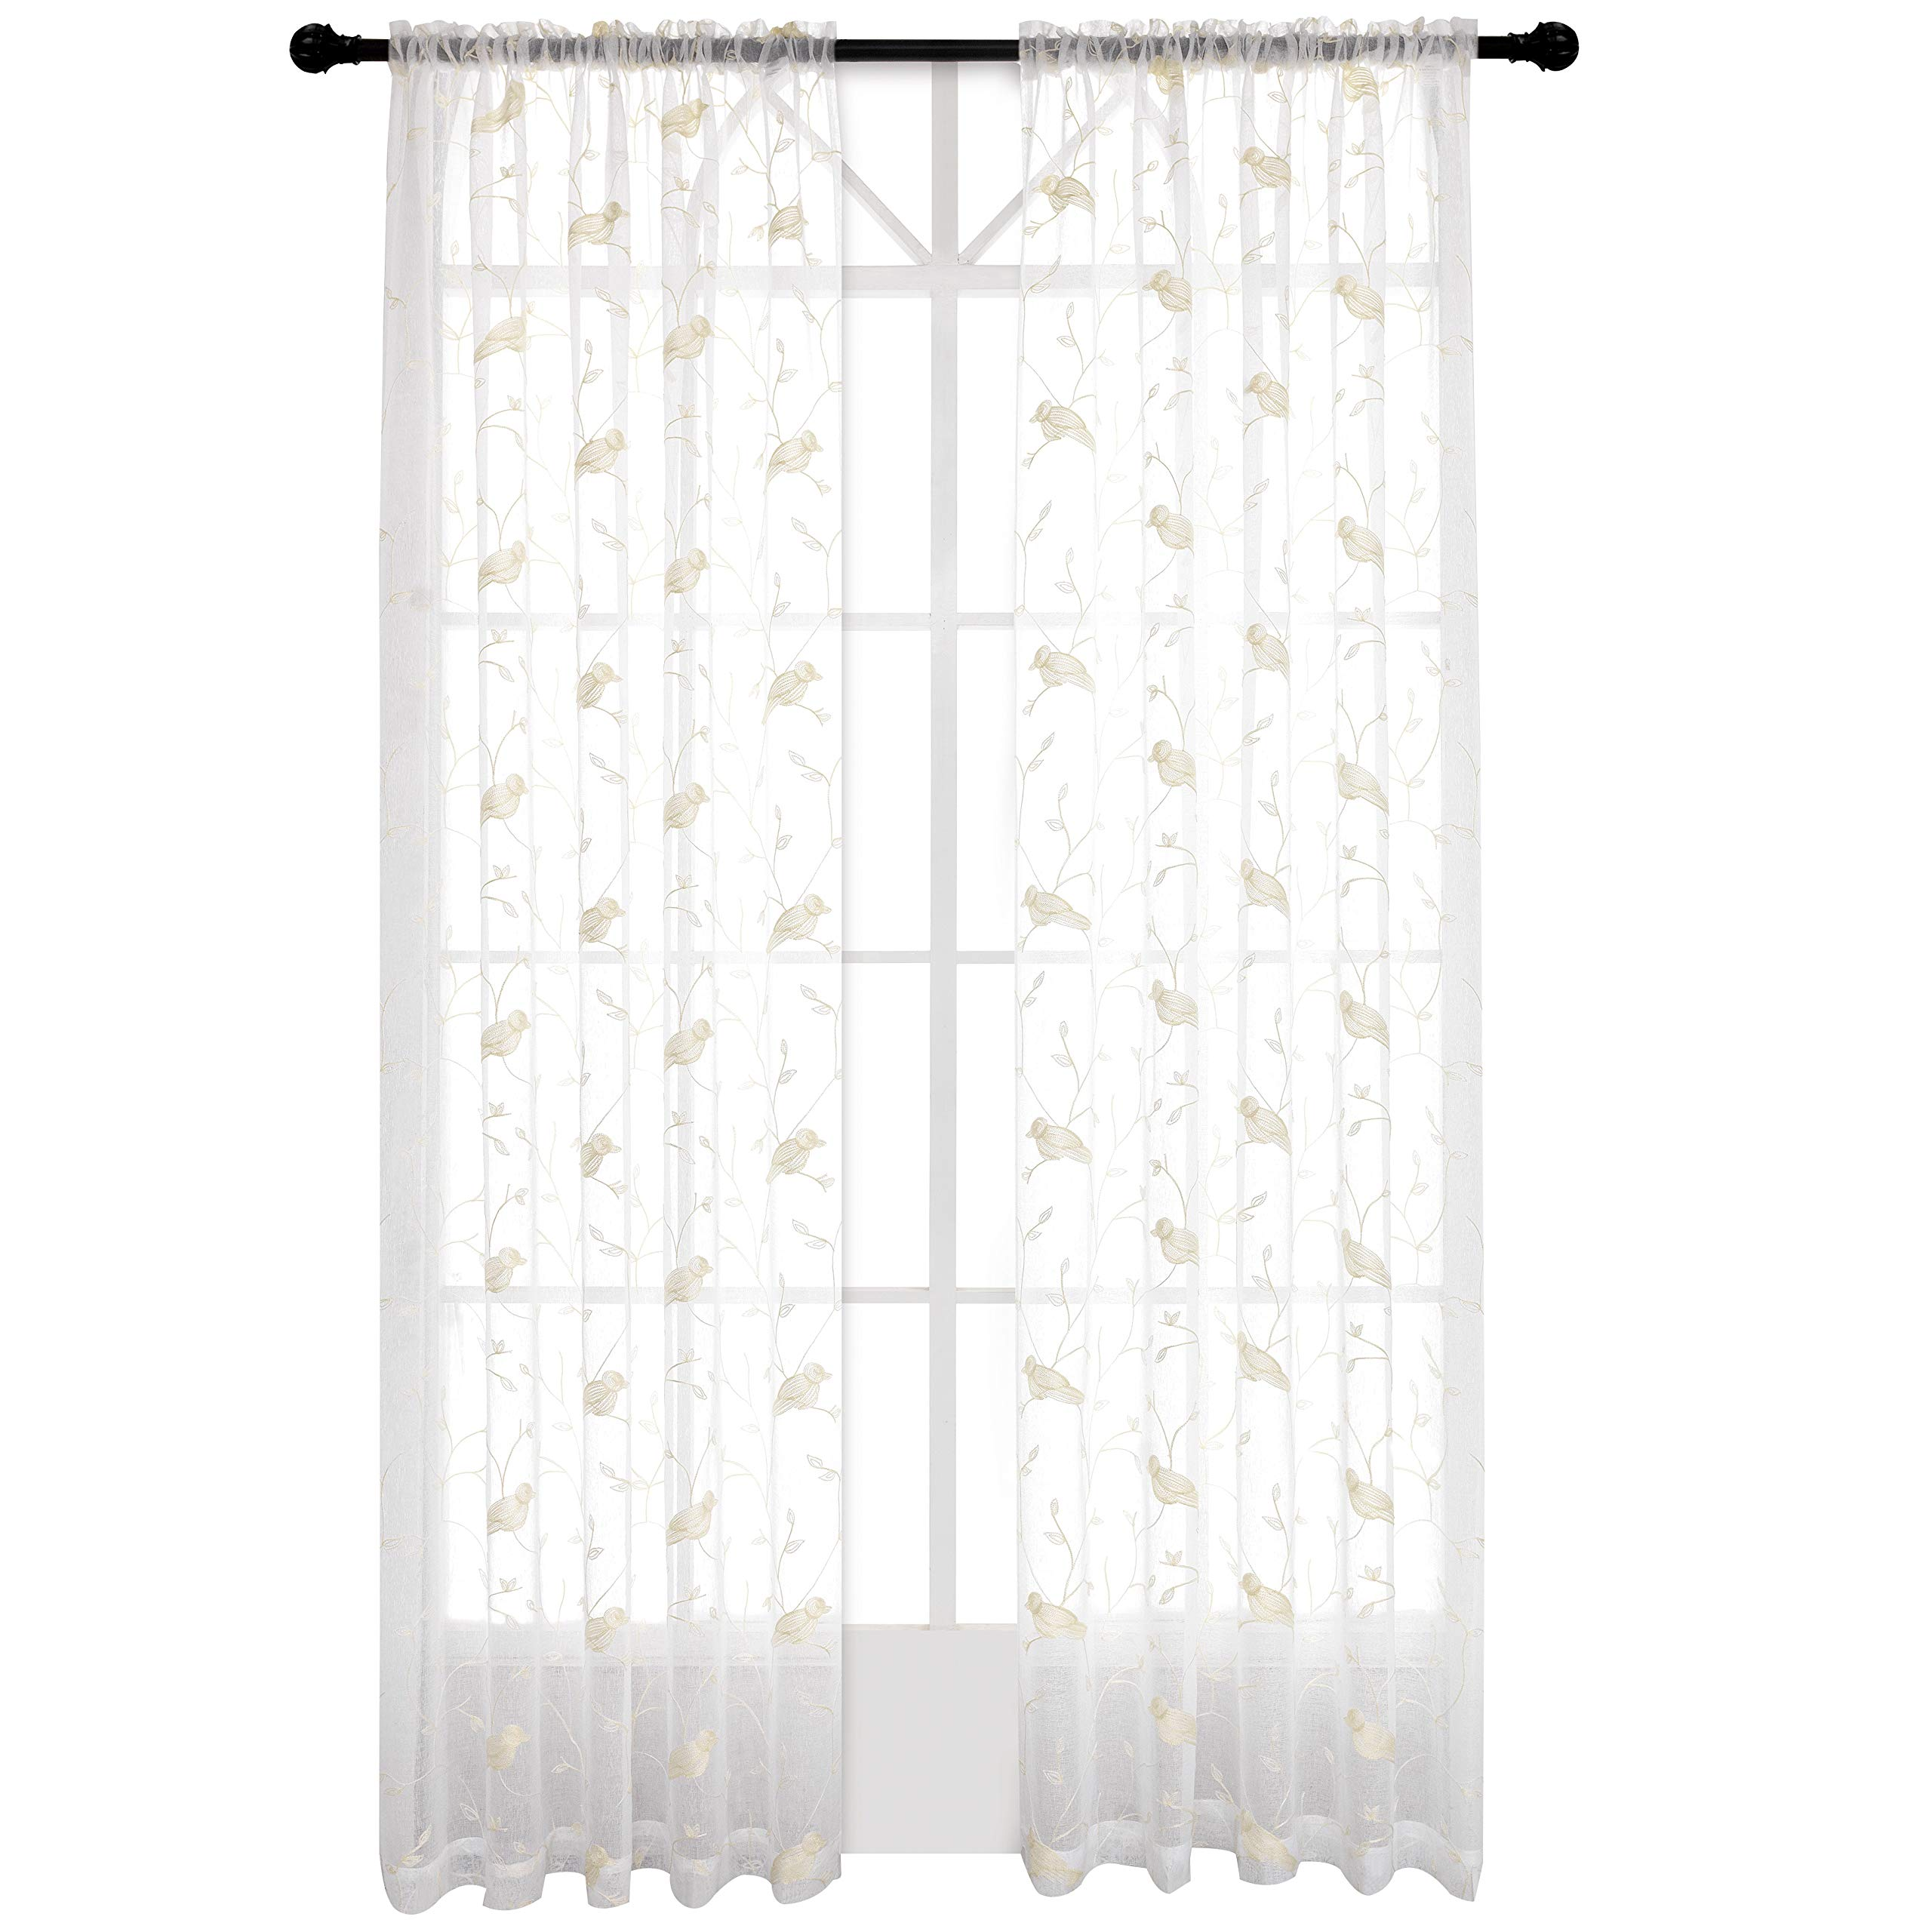 Embroidered Sheer Curtains Birds and Leaf White Voile Window Drapes for Living Room 52 X 84 inch Rod Pocket Set of 2 Curtain Panels White